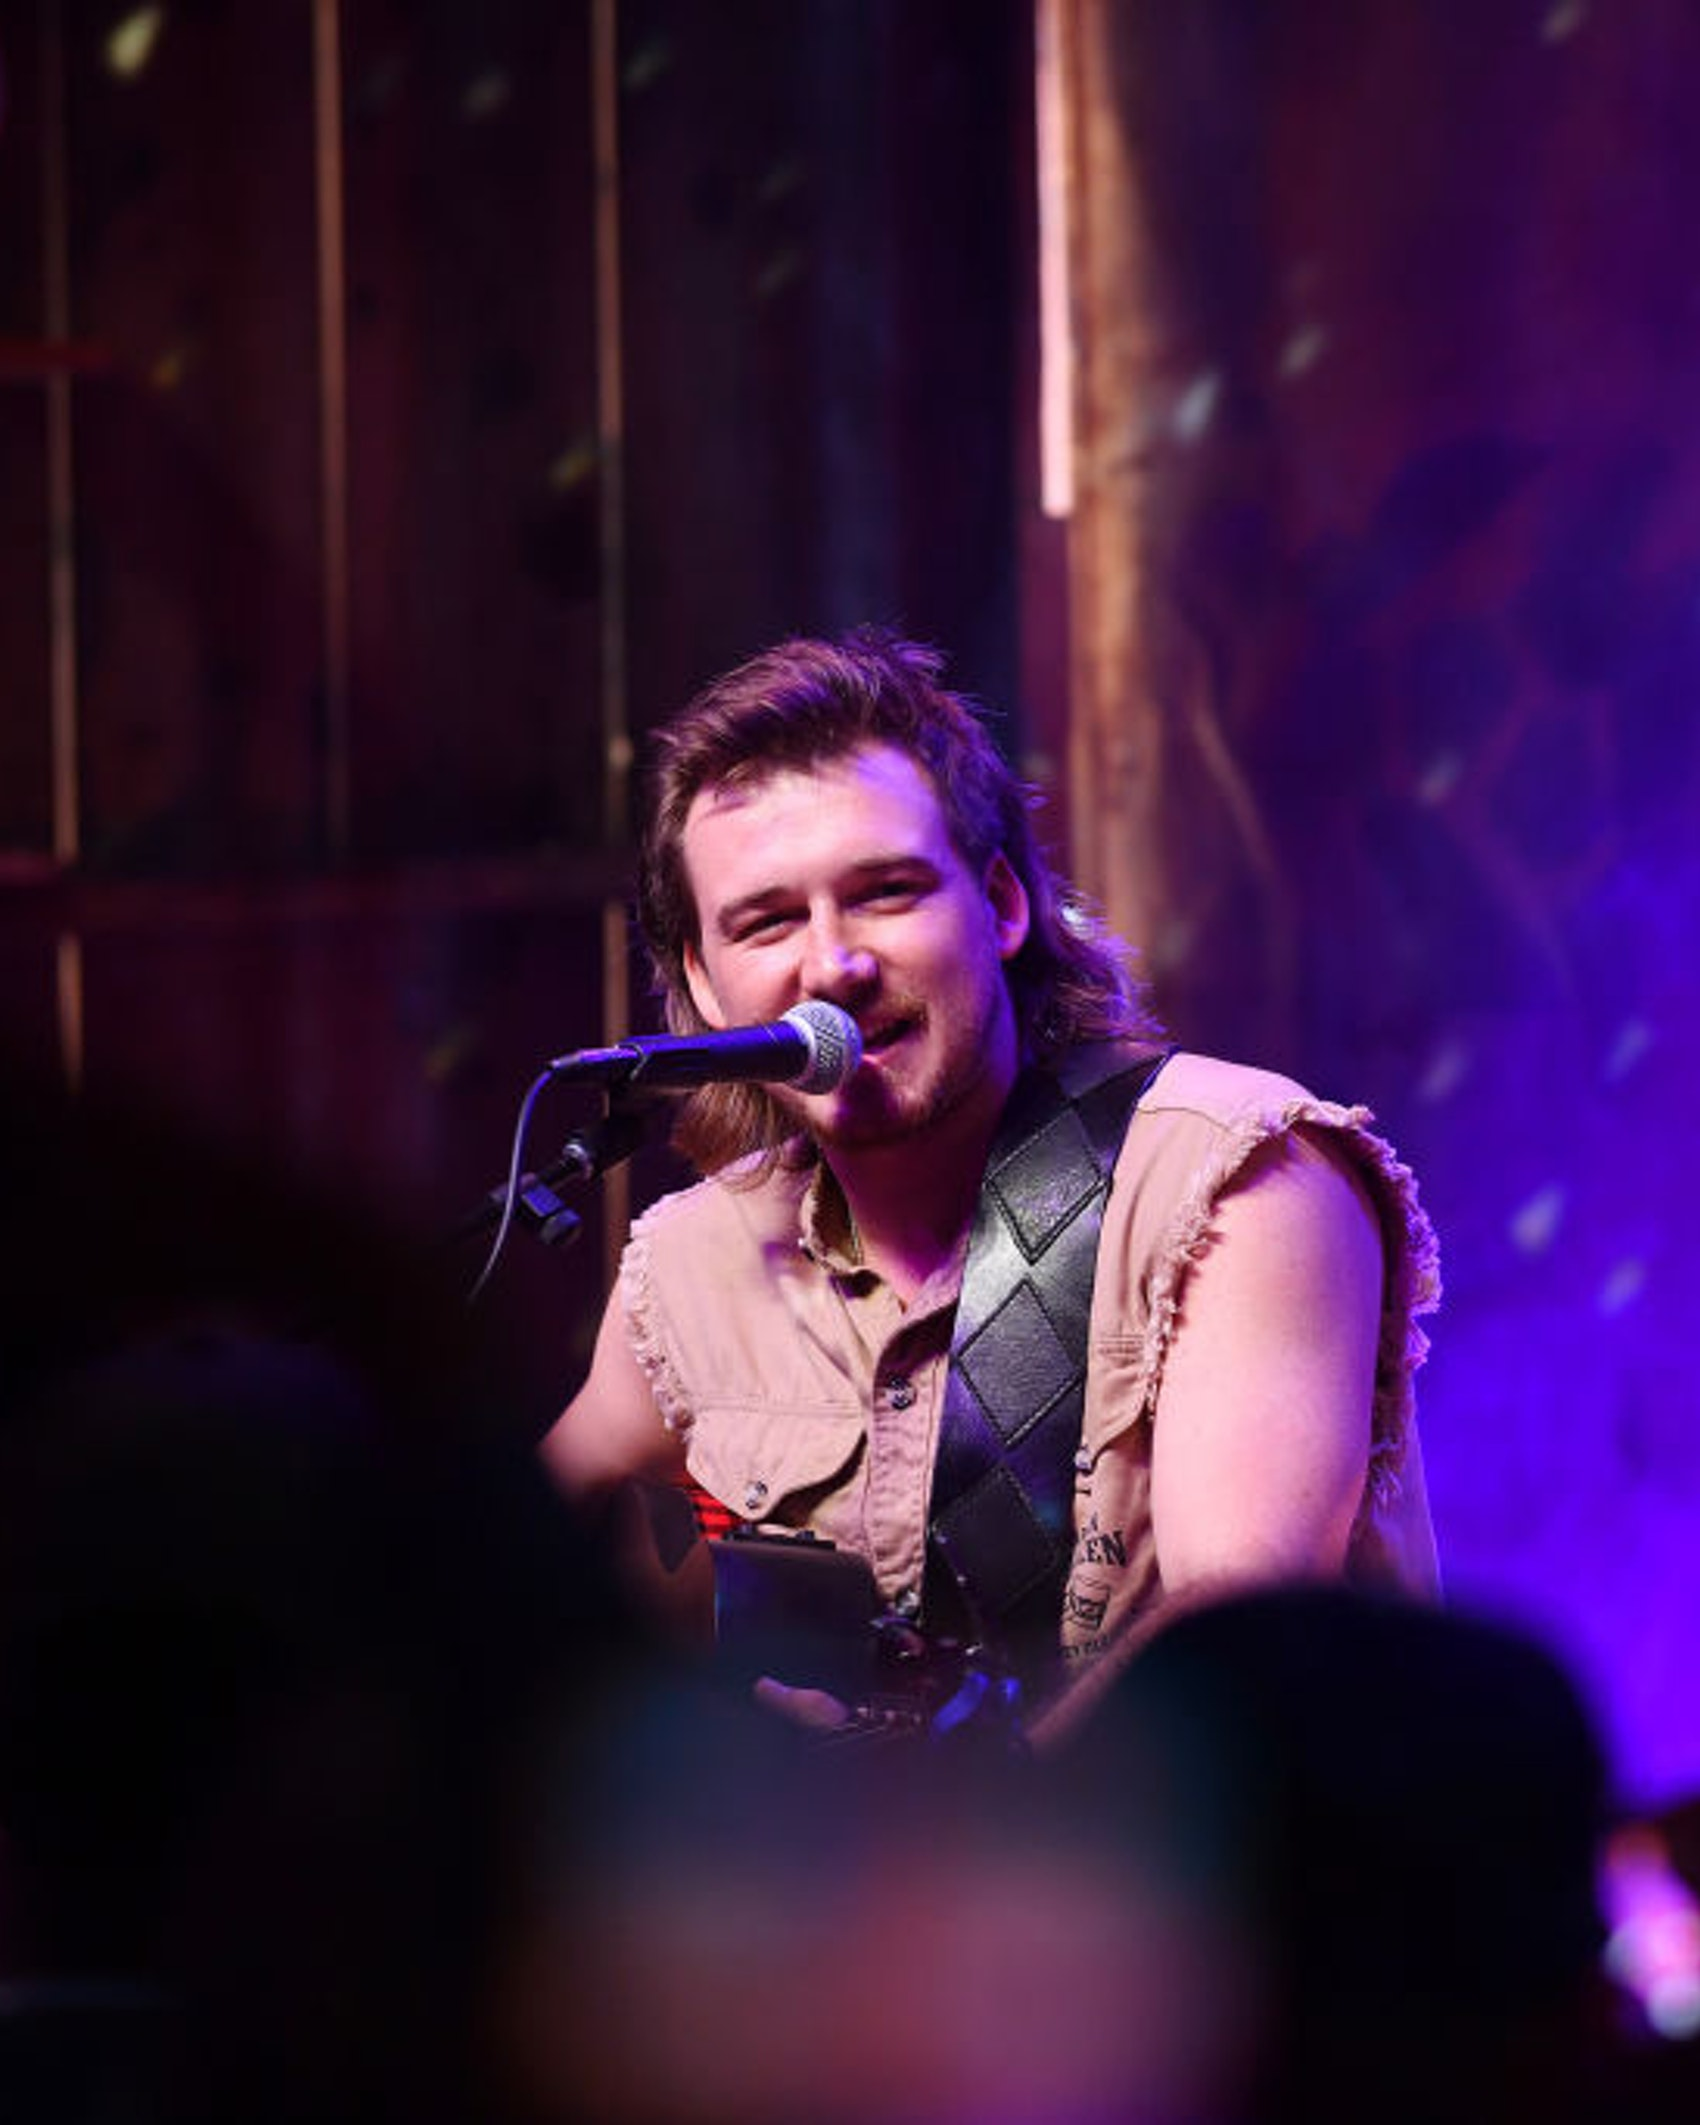 NASHVILLE, TENNESSEE - JUNE 06: Morgan Wallen performs onstage in the HGTV Lodge at CMA Music Fest on June 06, 2019 in Nashville, Tennessee. (Photo by Jason Davis/Getty Images for HGTV)